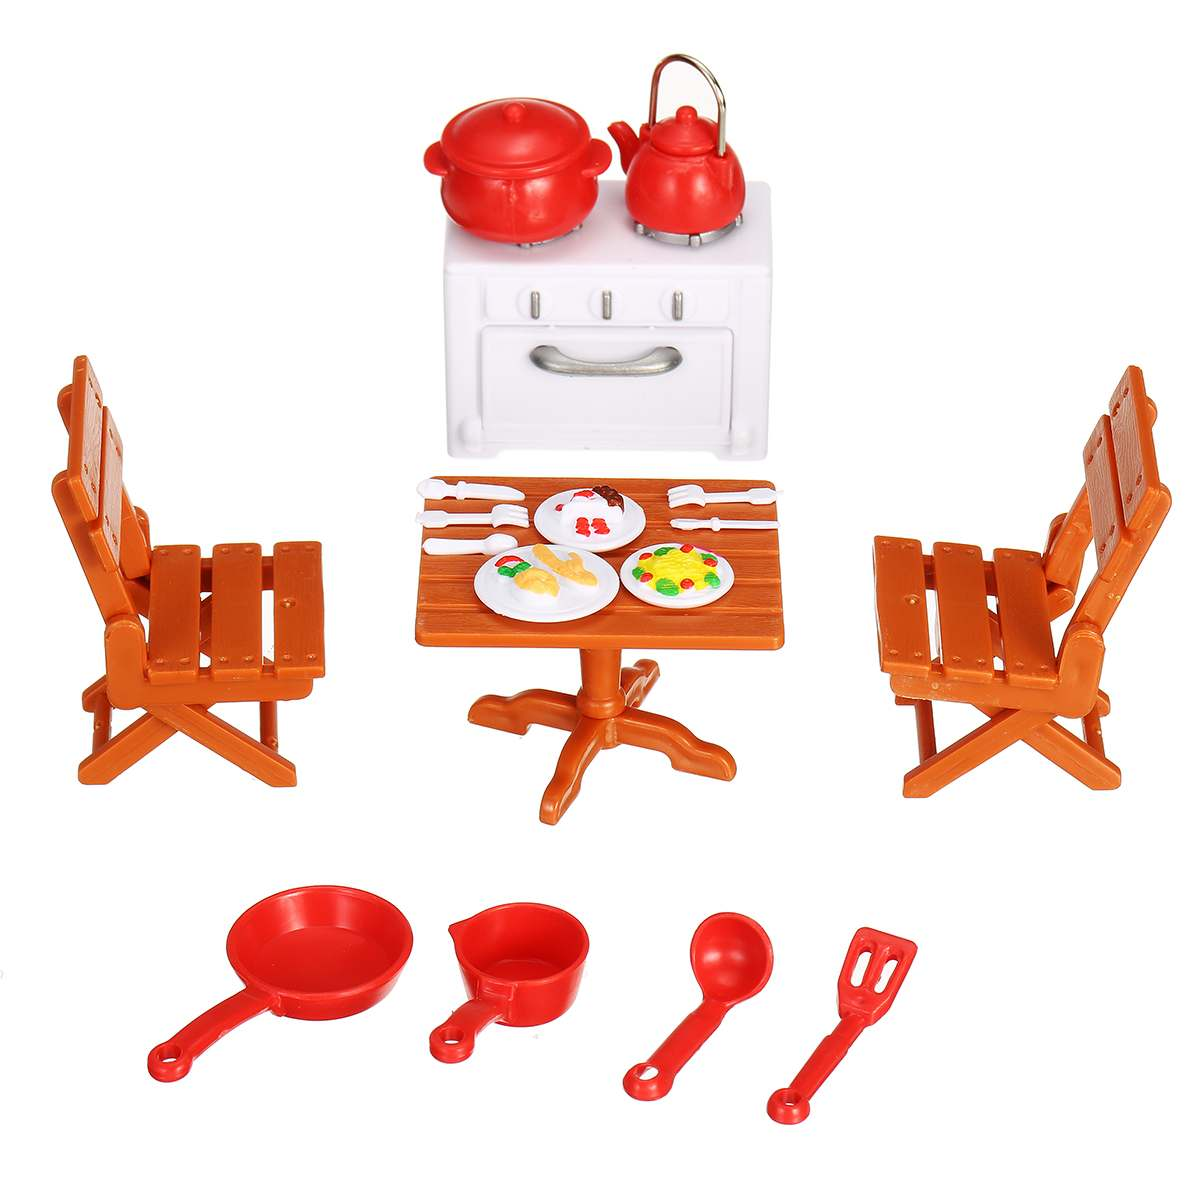 18pcs/set Simulation Doll House Mini Furniture Accessories Miniature Kitchen Furniture(table/cabinet/chair) Kids Toy Gifts